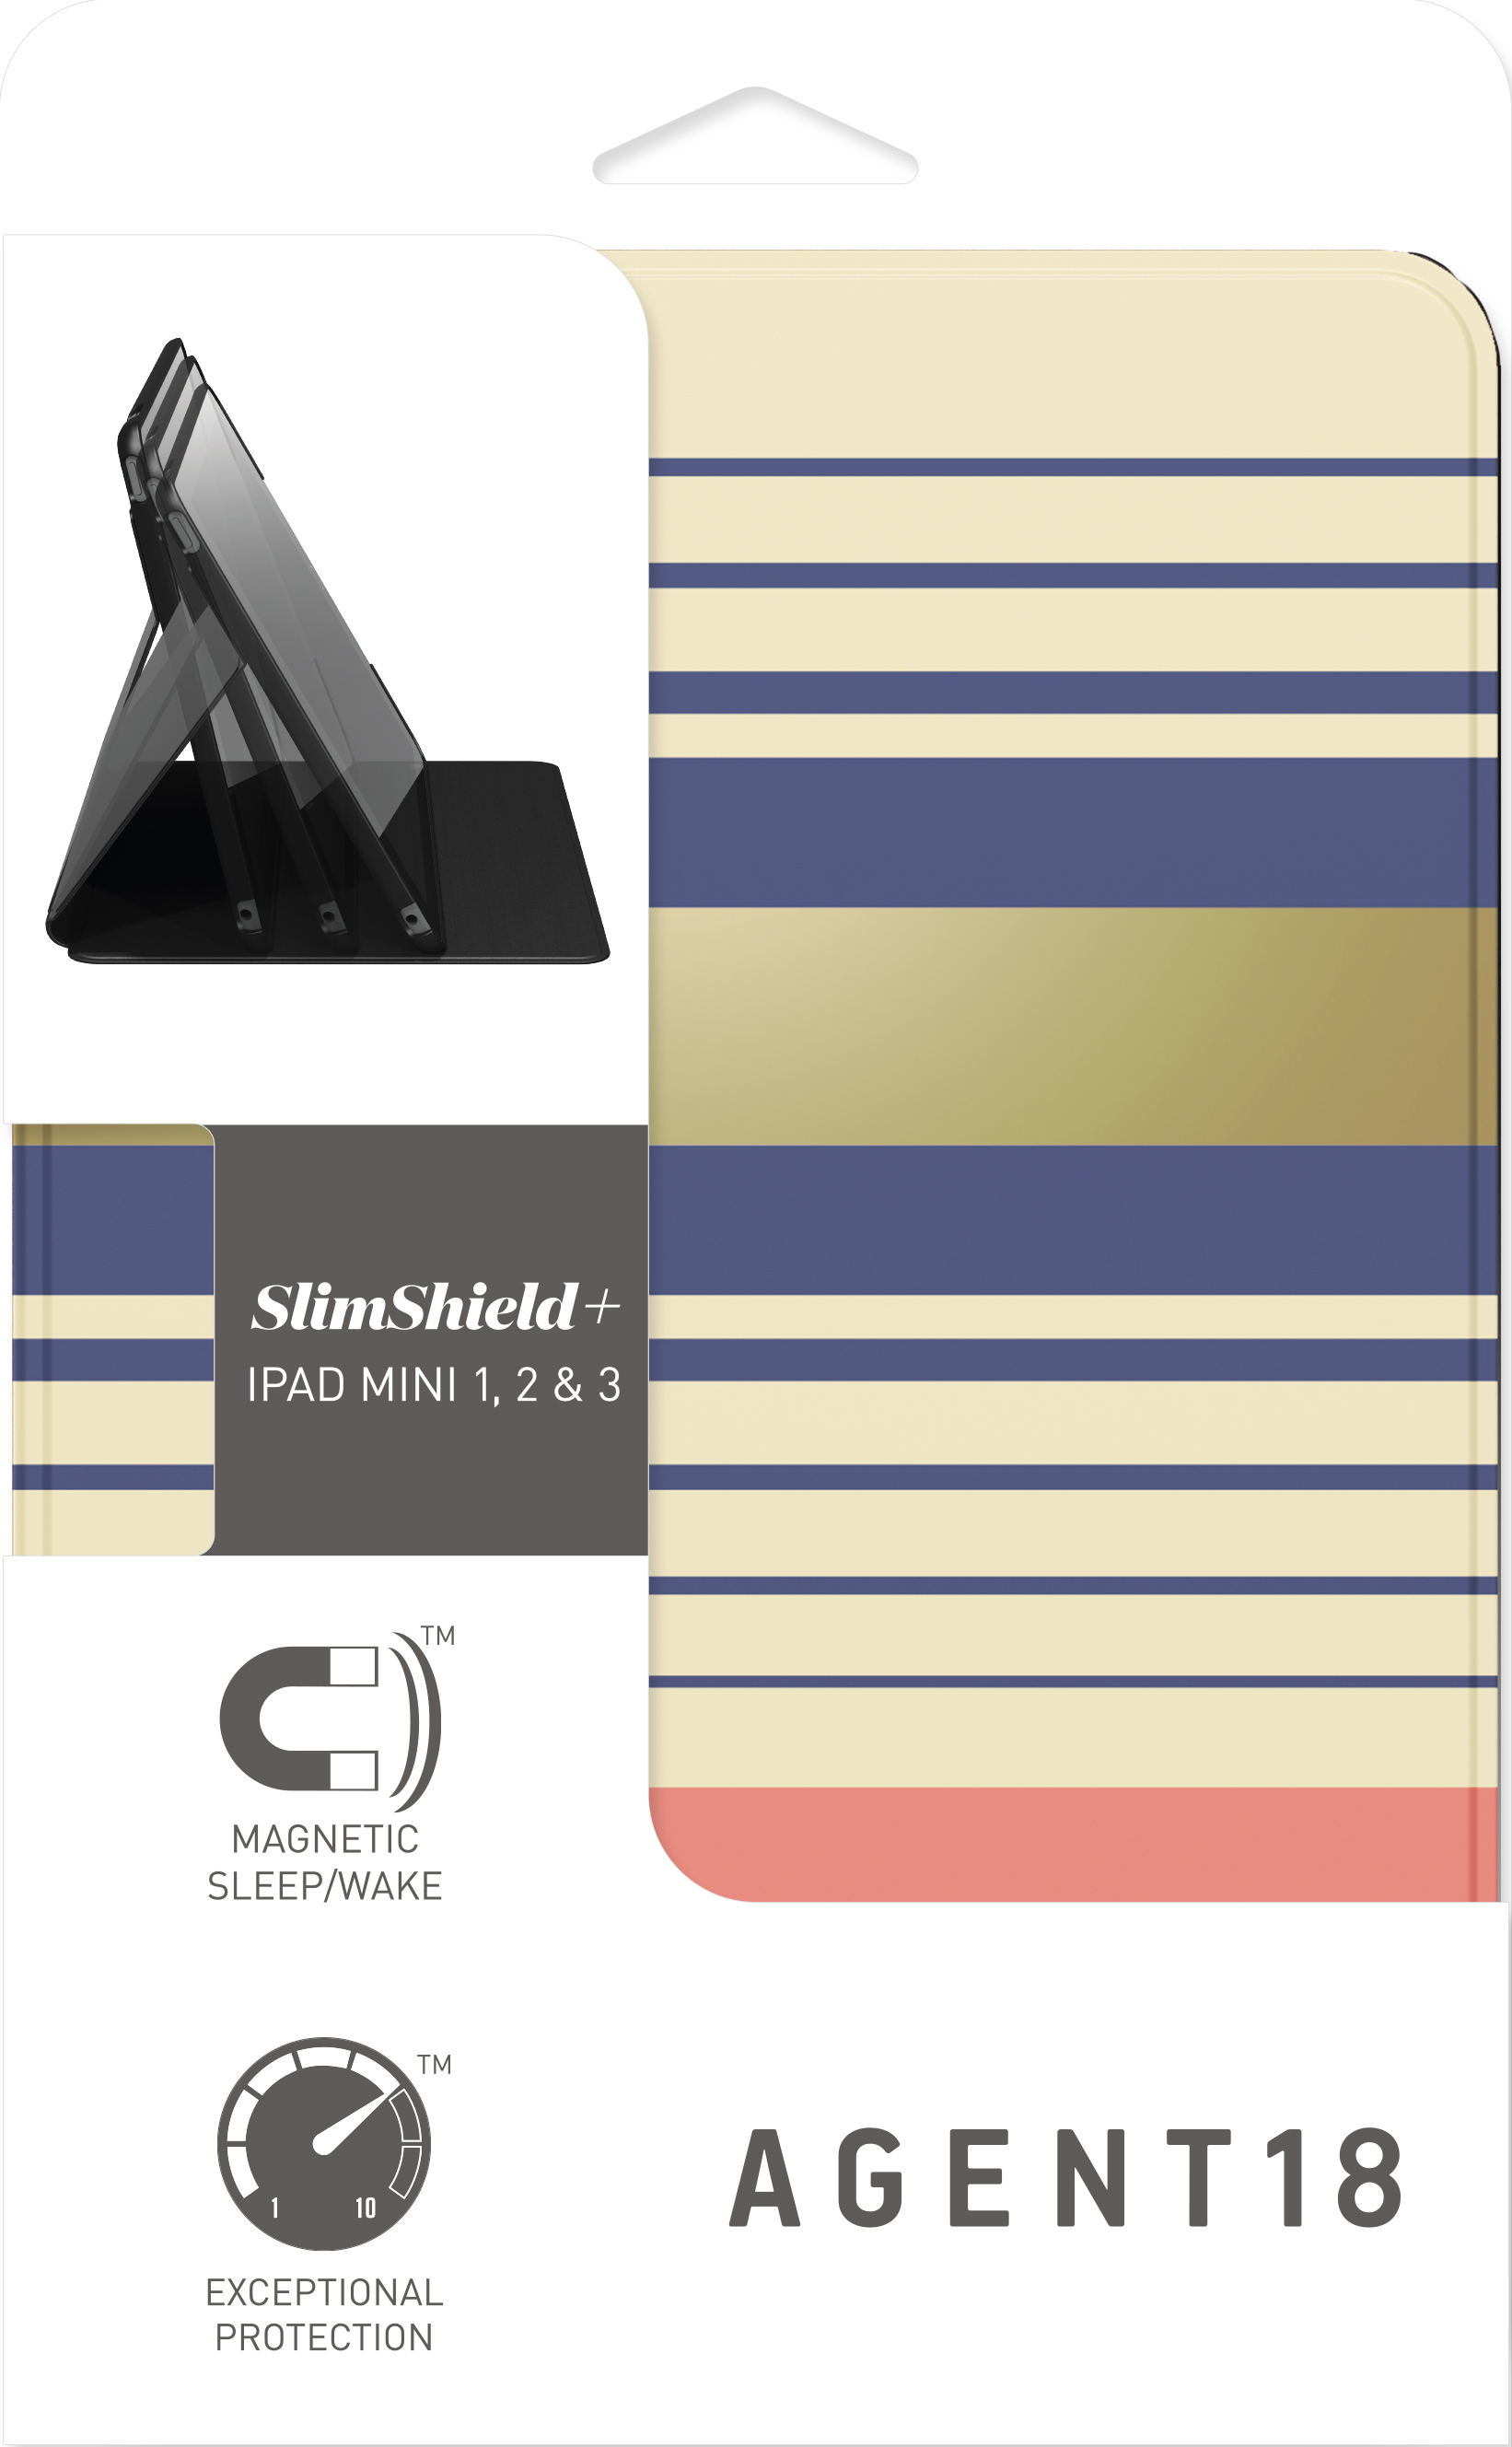 iPadmini3-Packaging-Rendering-Preppy.jpg